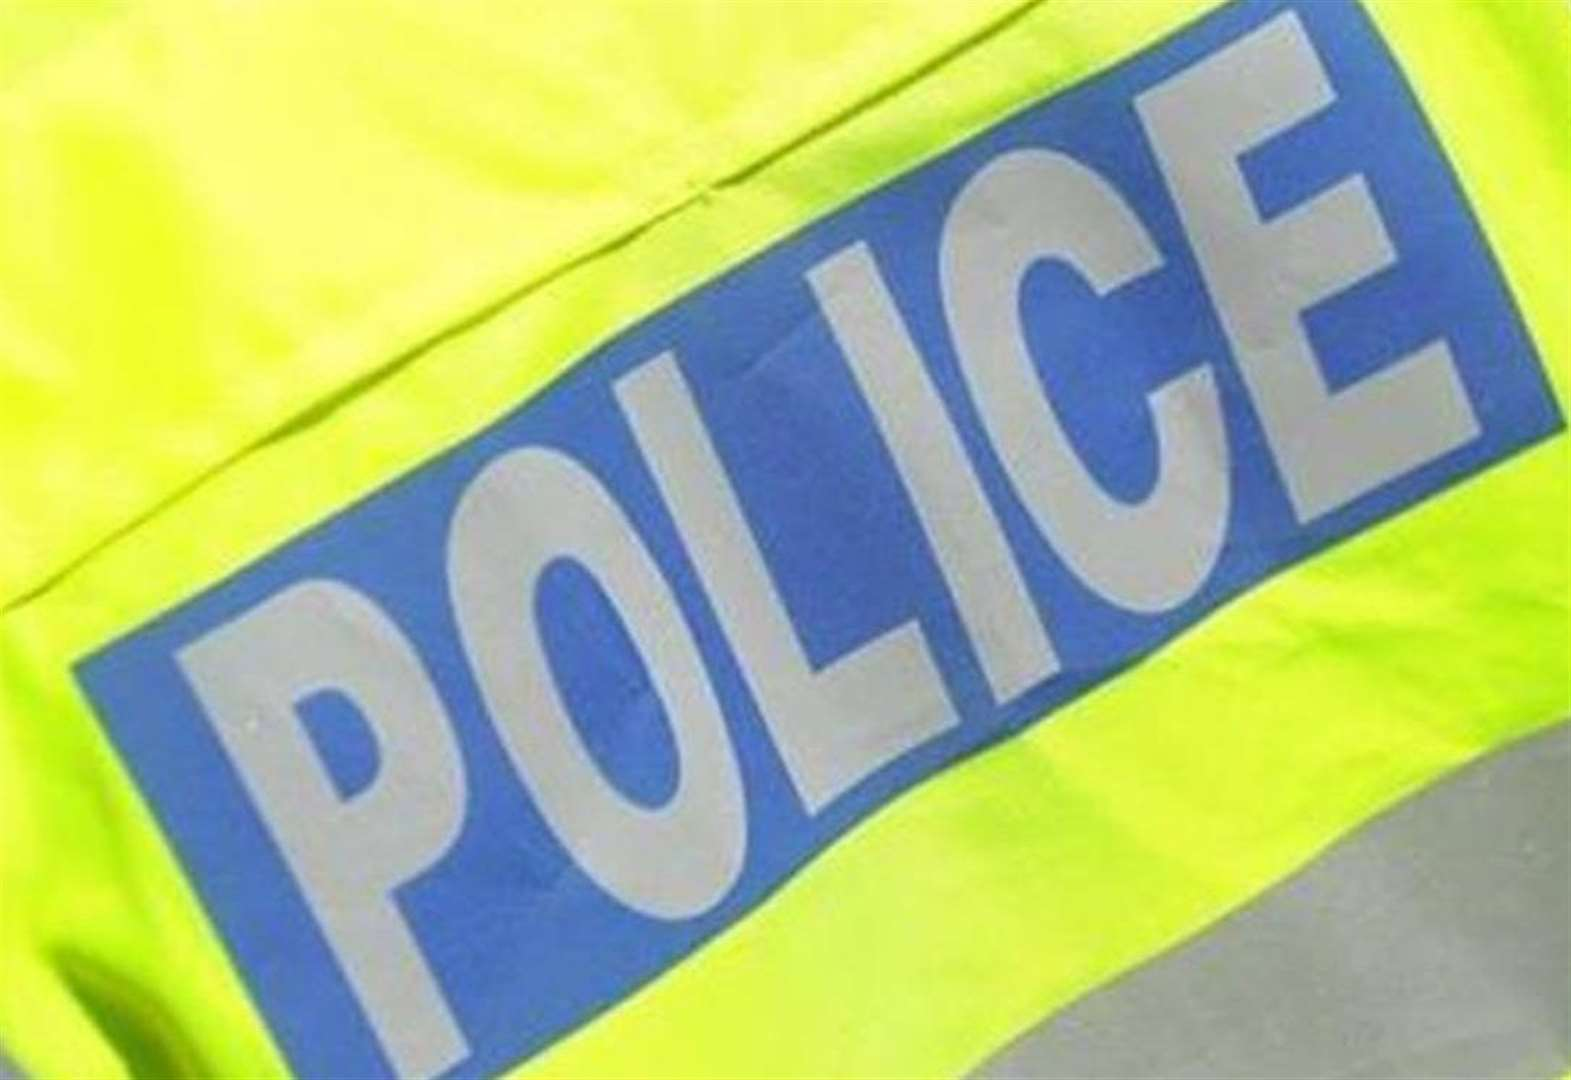 Two arrests after motorbike theft in Diss